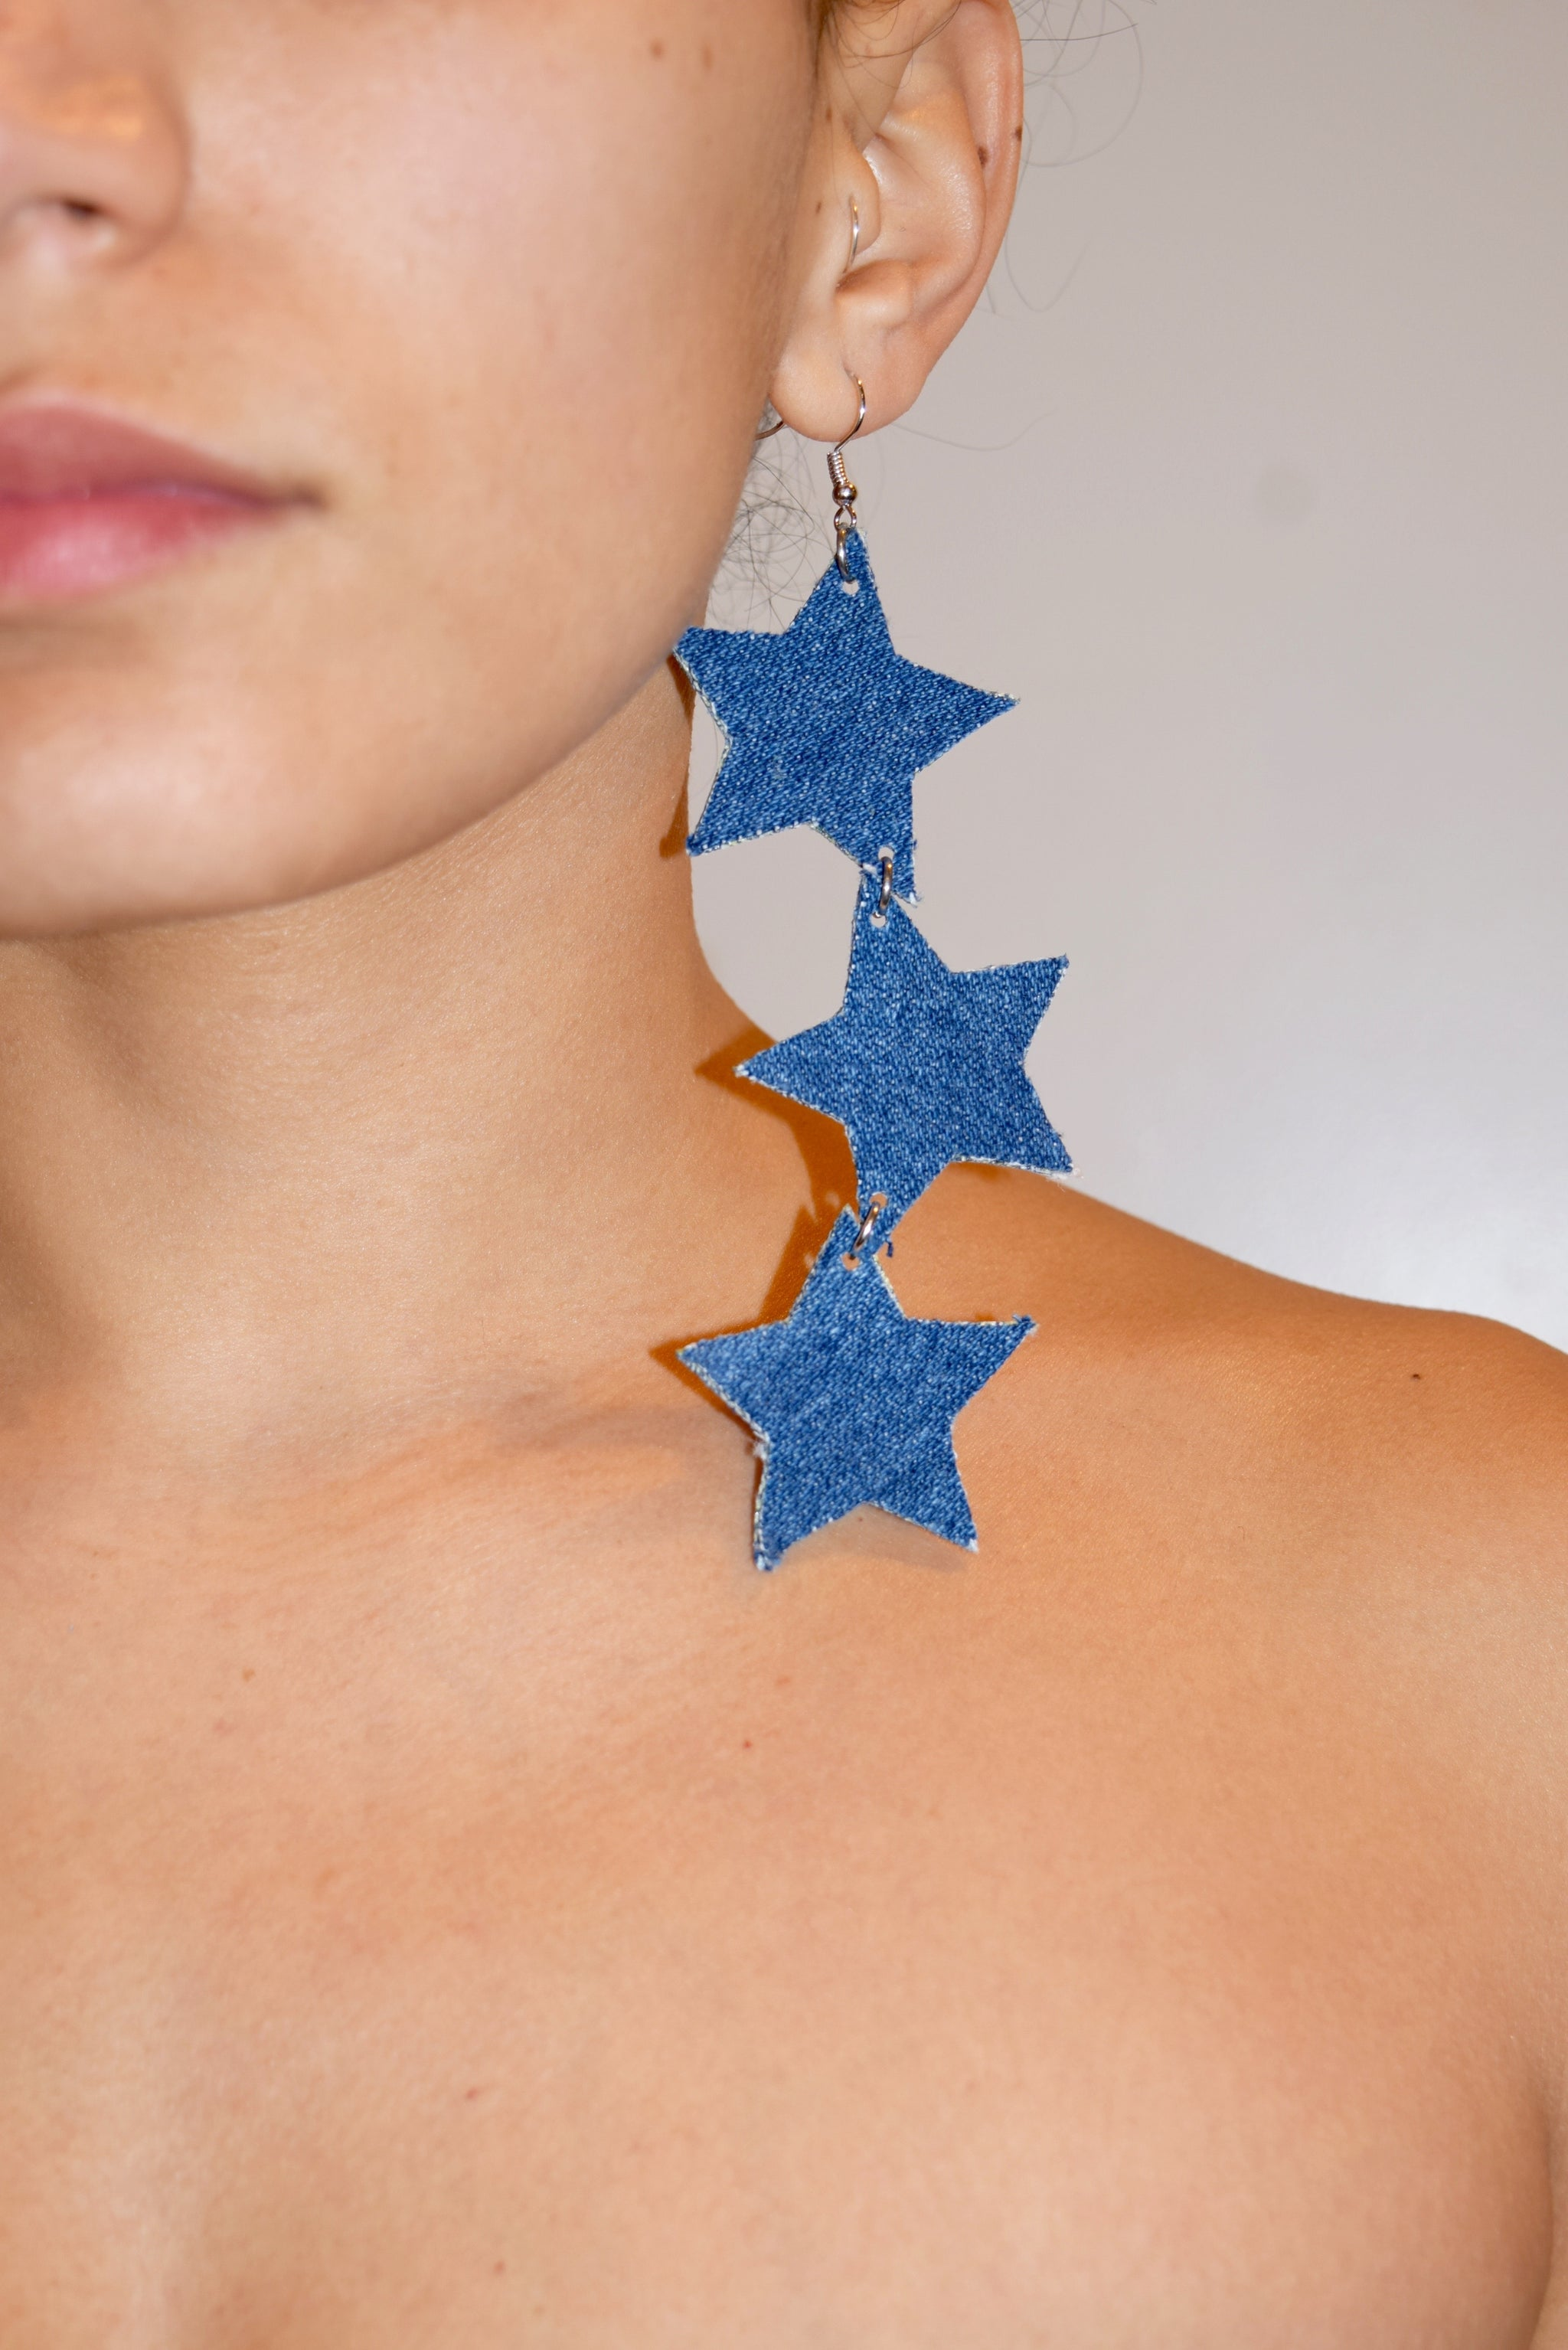 Denim Earrings , star earrings